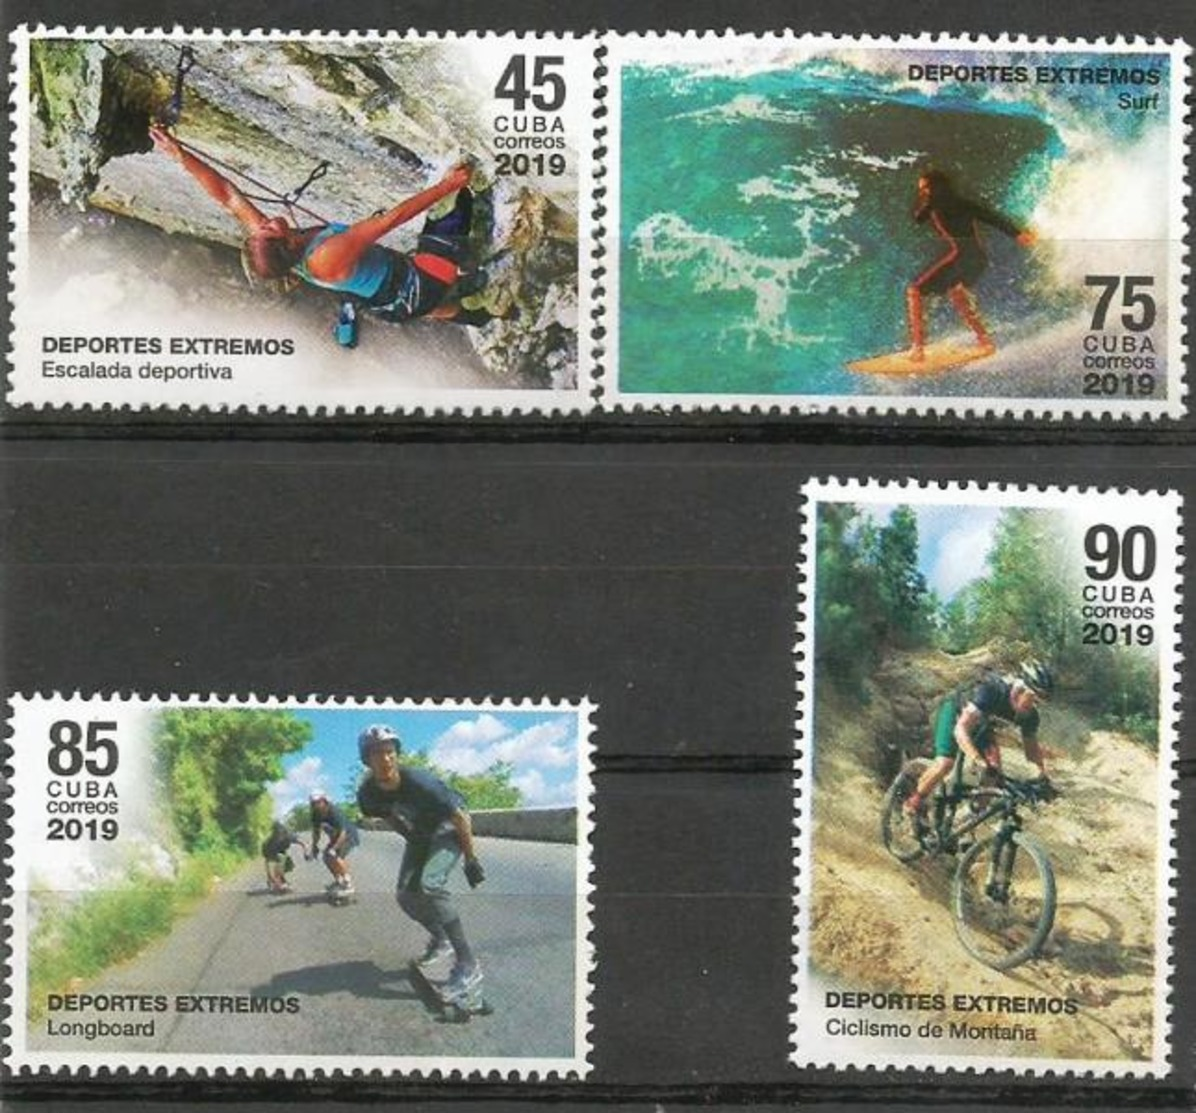 Cuba 2019 Extreme Sports (Mountain Escalade, Surf, Longboard And Montain Cycling) 4v MNH - Handisport